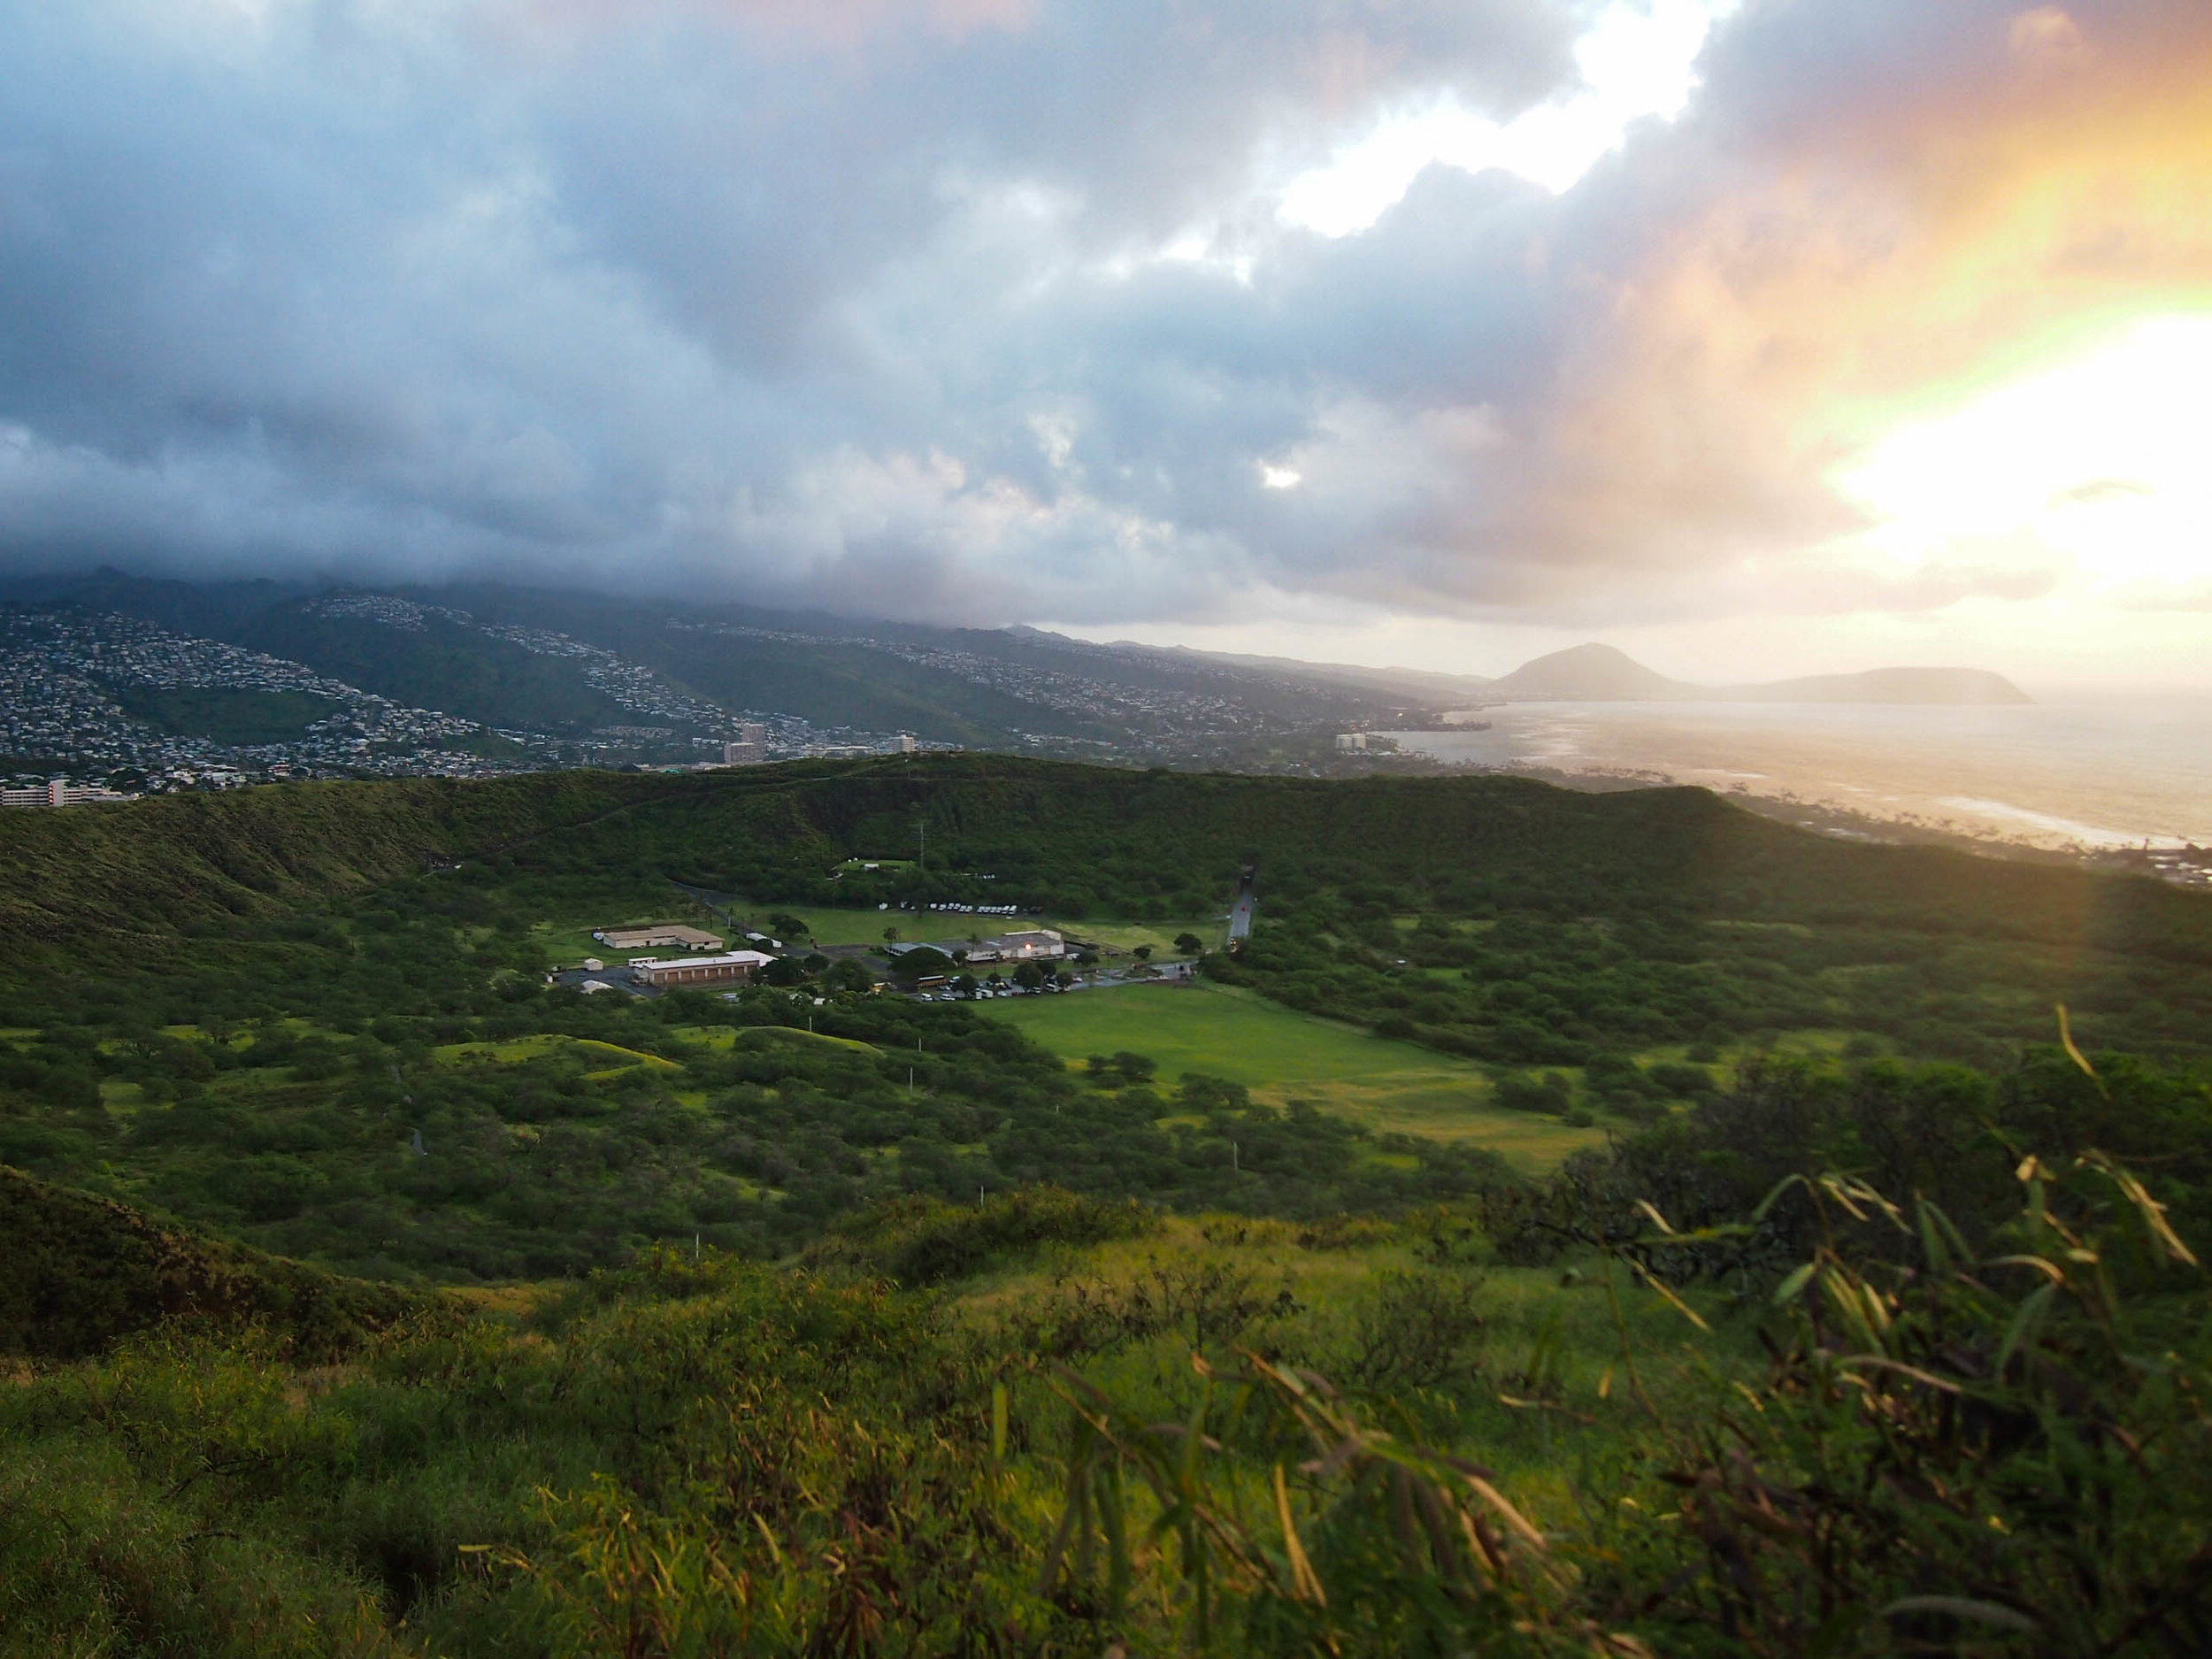 Sunrise over Oahu from Diamond Head Crater